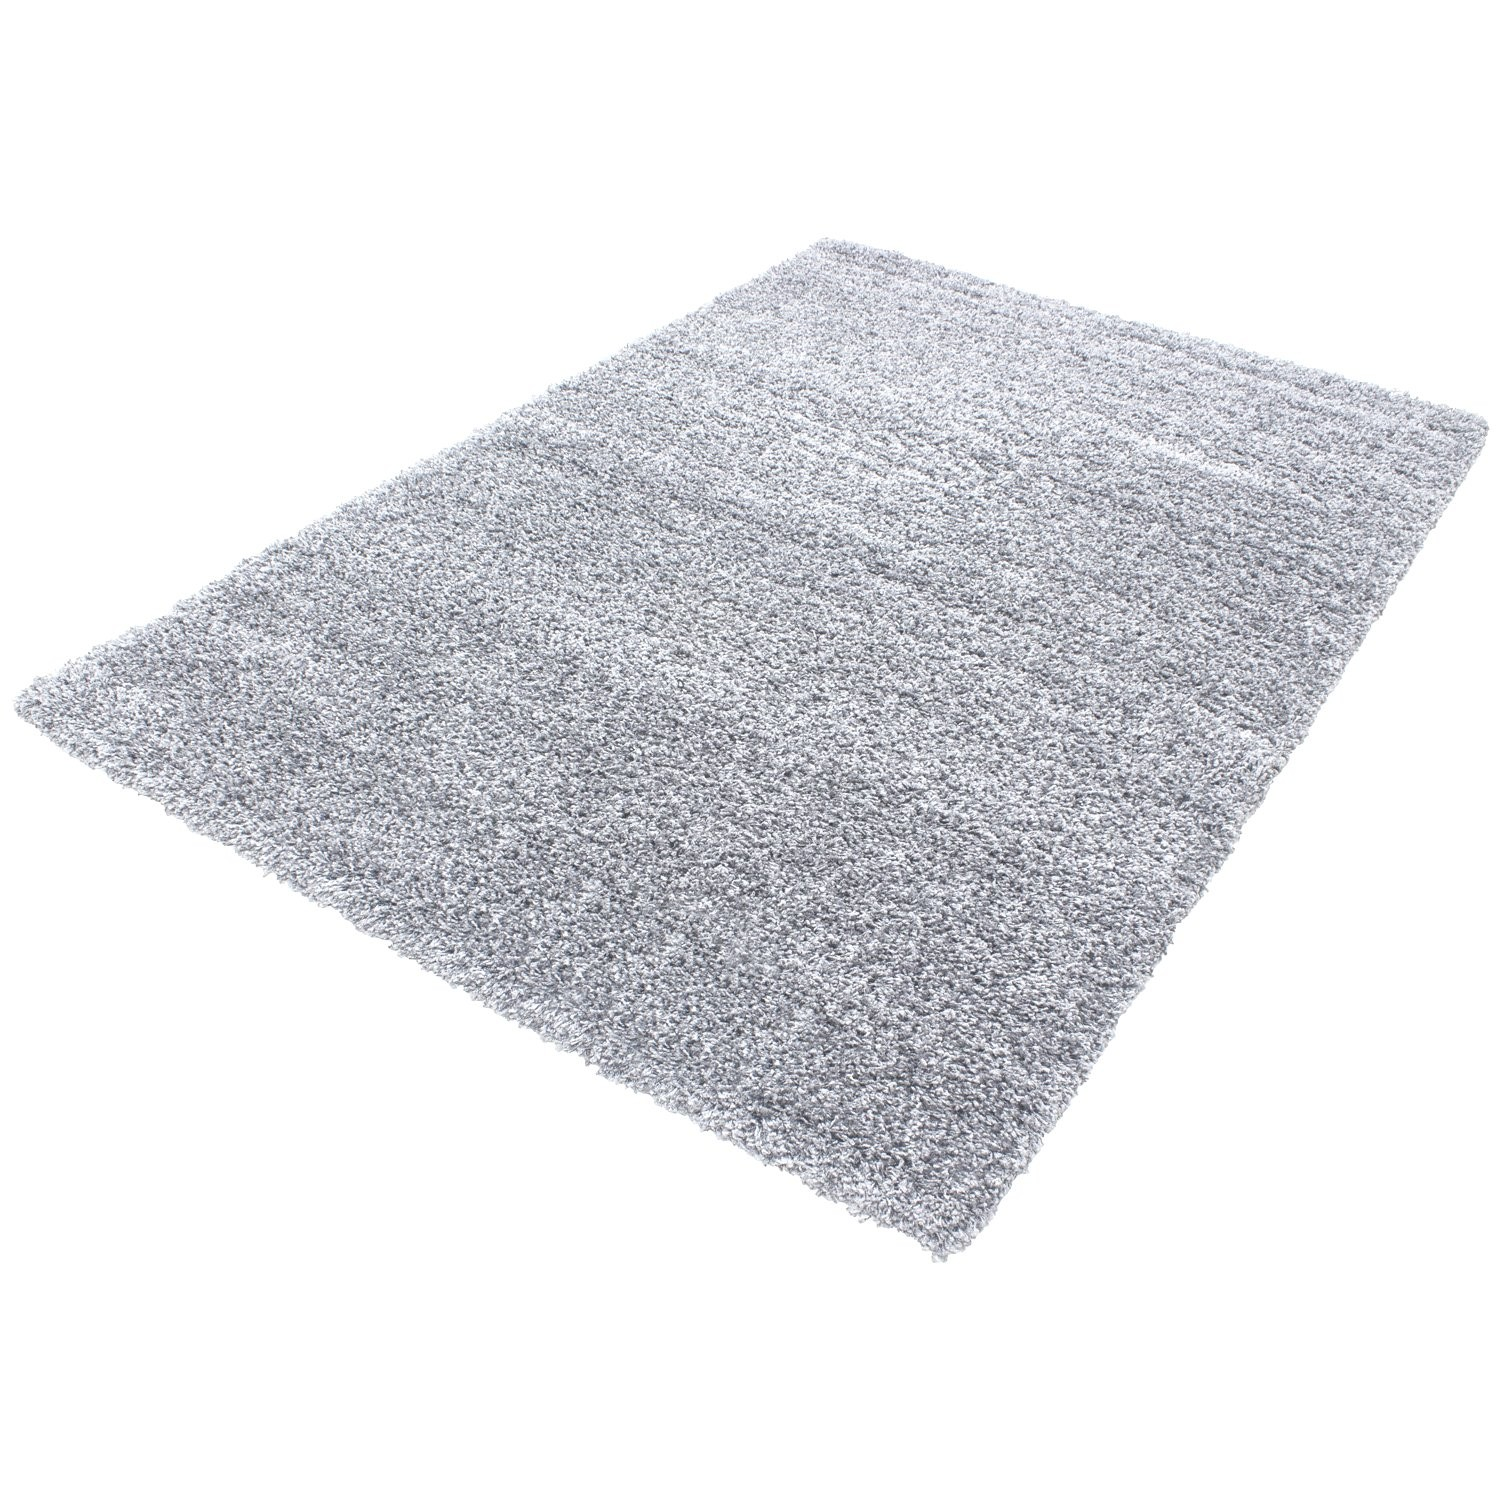 tapis shaggy gris clair moderne tapis design uni en. Black Bedroom Furniture Sets. Home Design Ideas